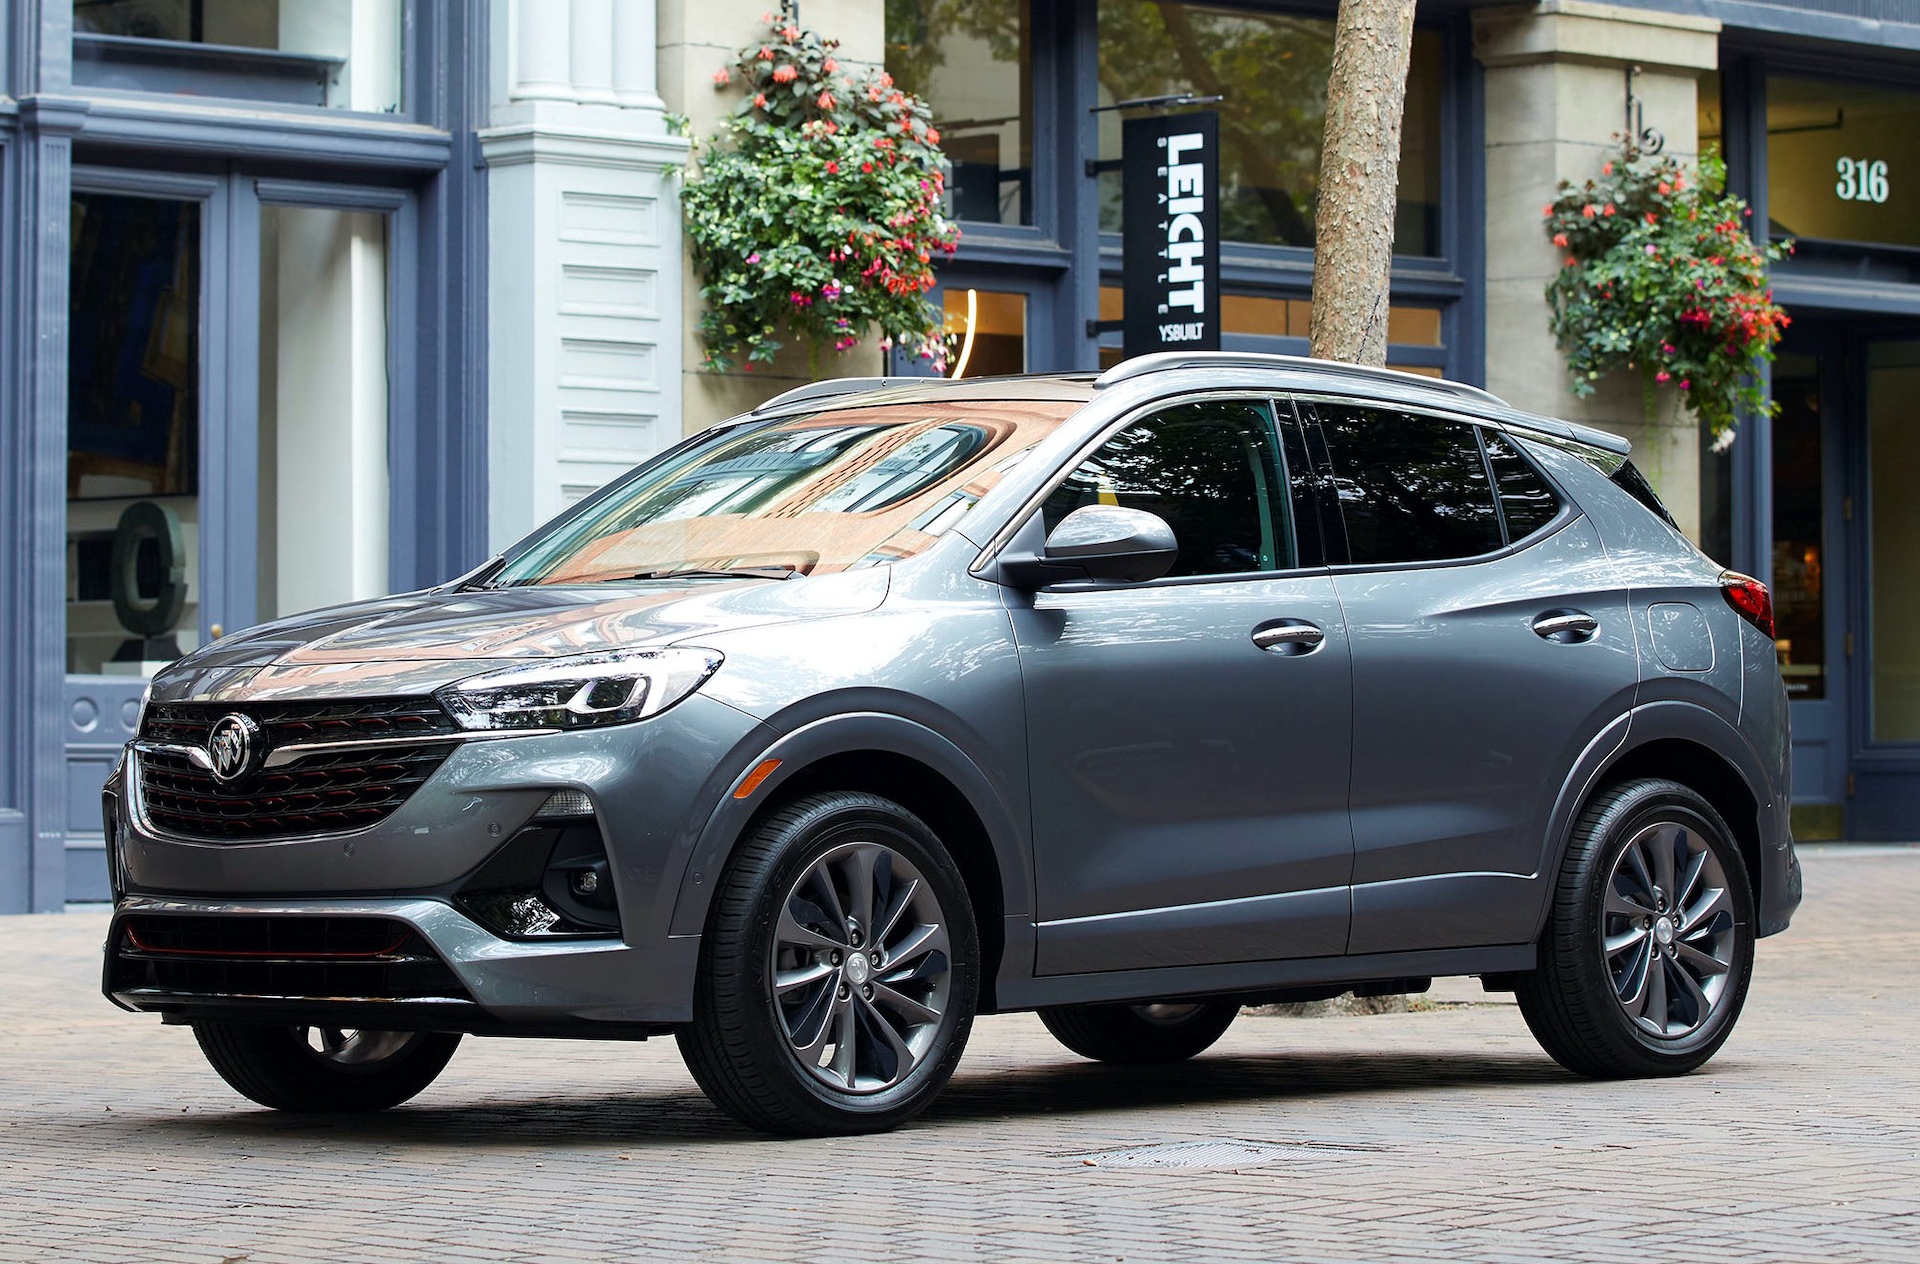 2021 Buick Encore Gx Review, New York Auto Show Canceled New 2022 Buick Encore Transmission, Tire Size, Test Drive